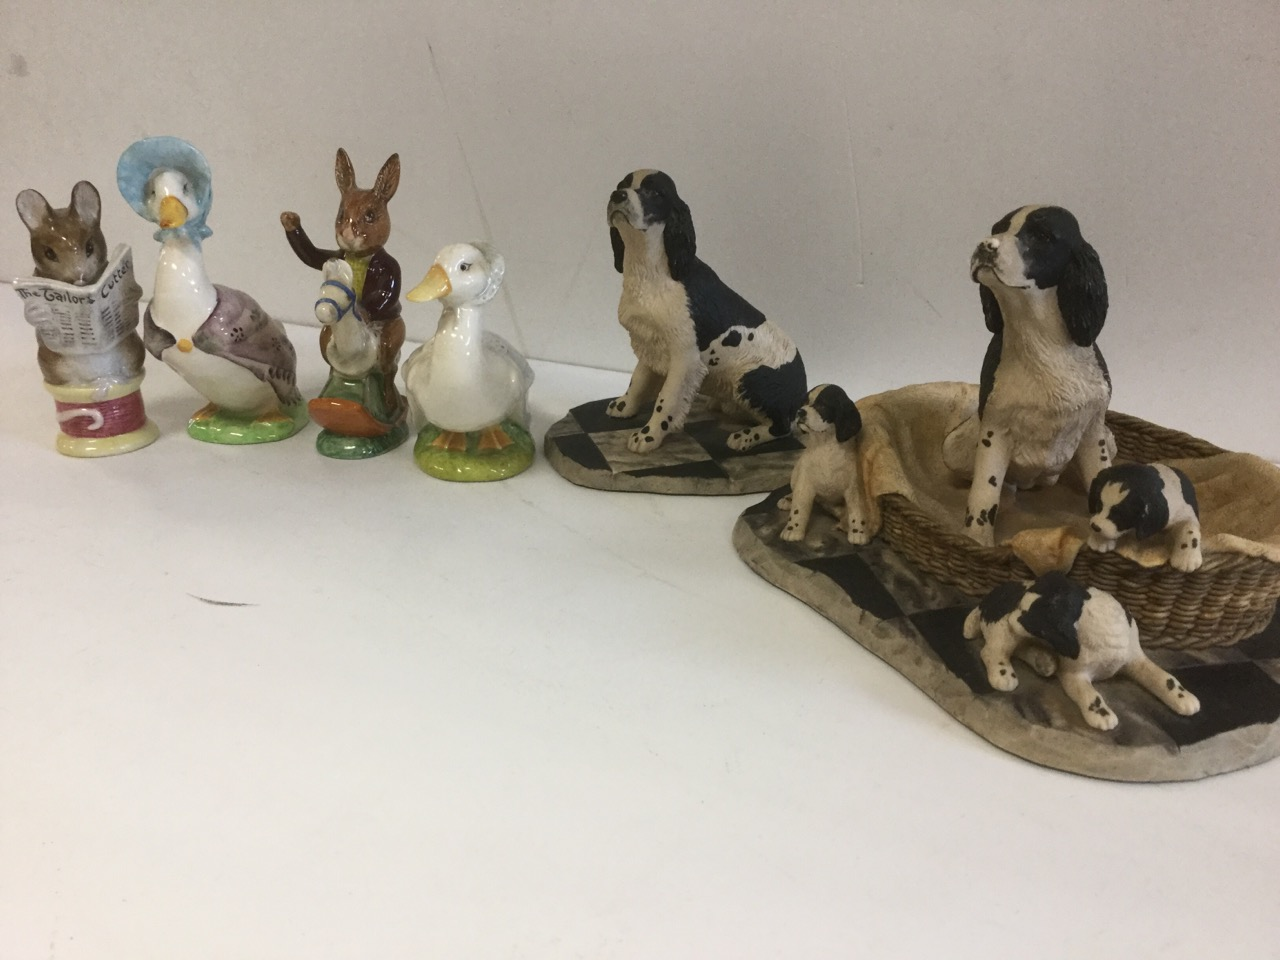 Lot 10 - Three Beswick Beatrix Potter figurines - Jemima Puddleduck, Tailor of Gloucester, and Rebeccah